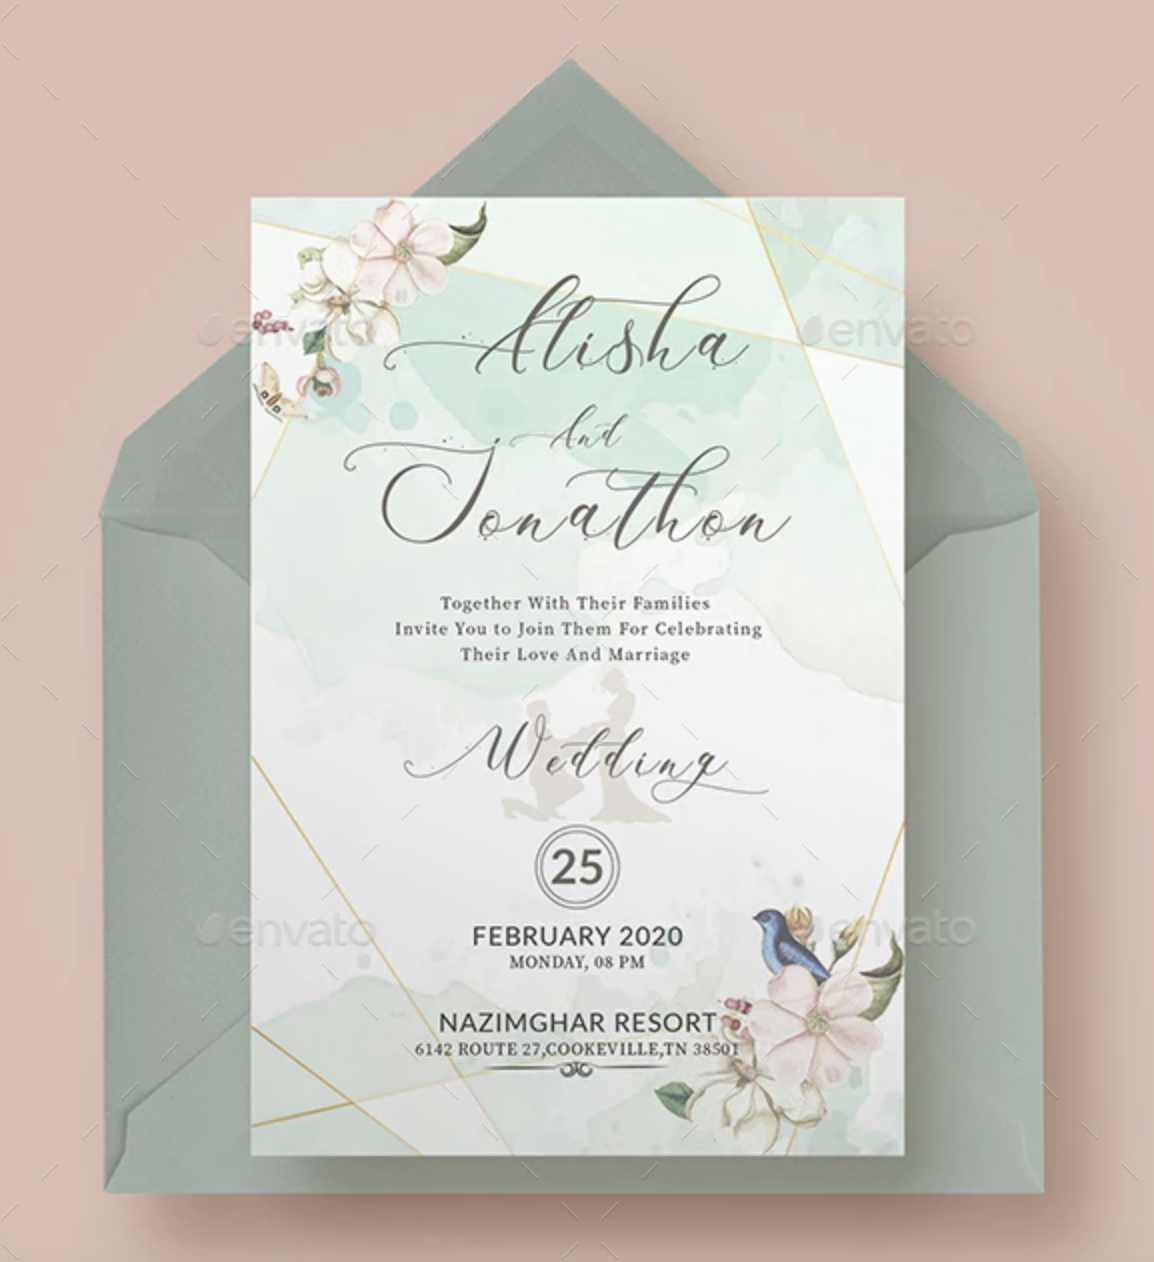 The 35 Best Wedding Gifts Of 2020: 57+ Best Gift, Greeting And Invitation Card Mockups 2019